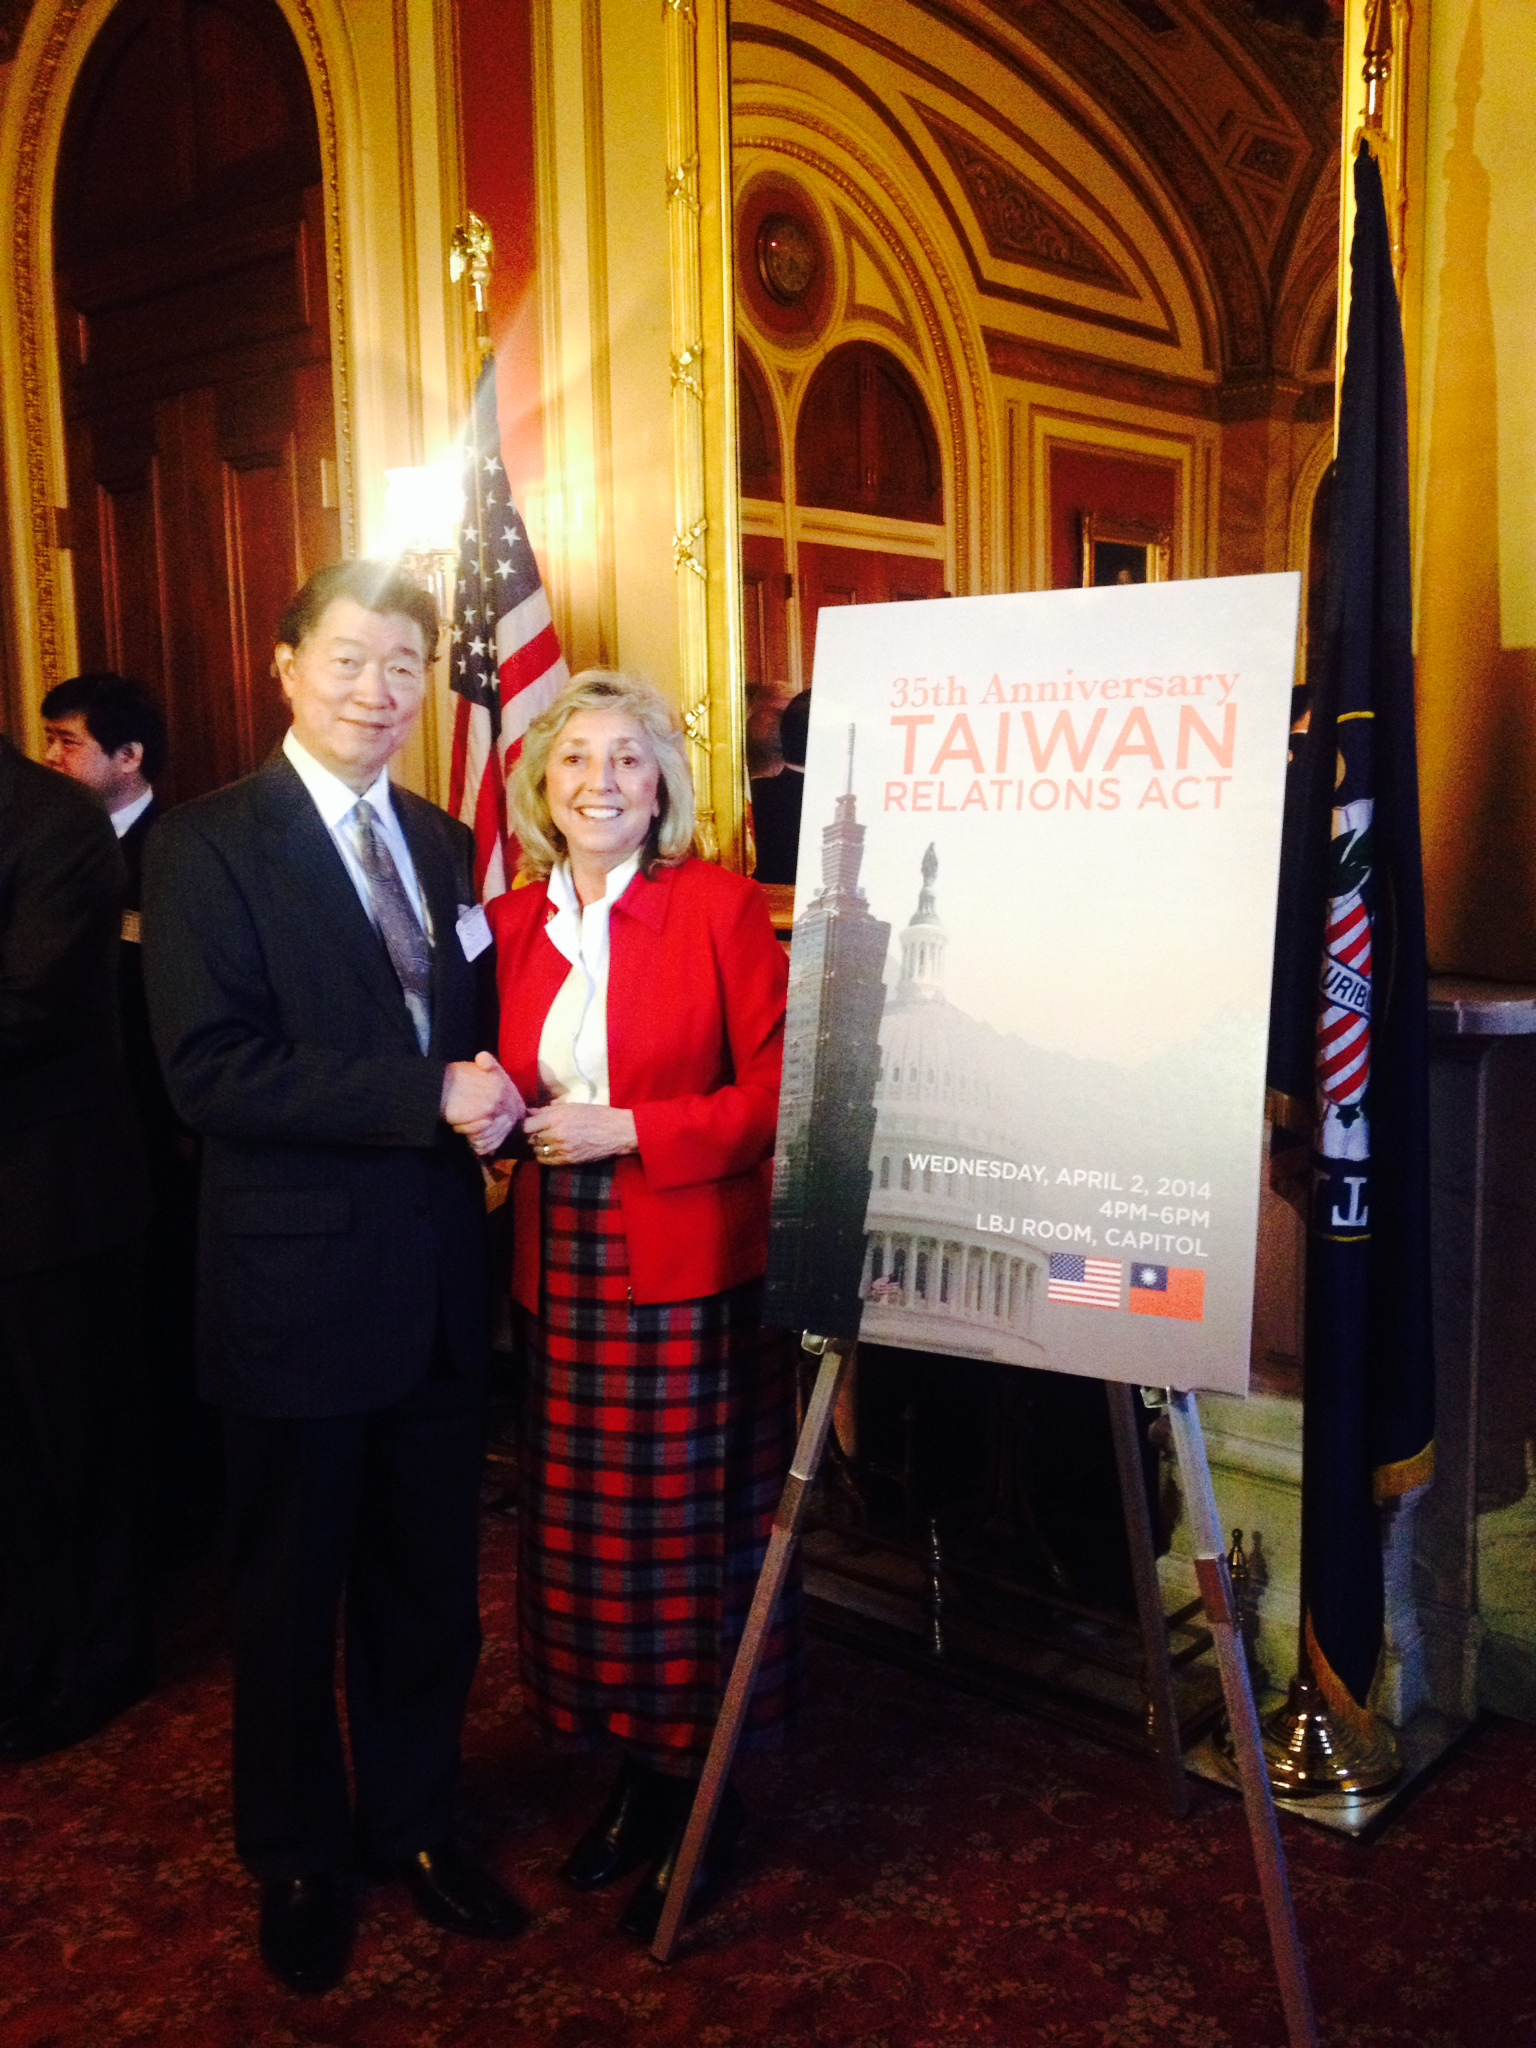 Titus, Congressional Taiwan Caucus Celebrate the 35th Anniversary of the Taiwan Relations Act